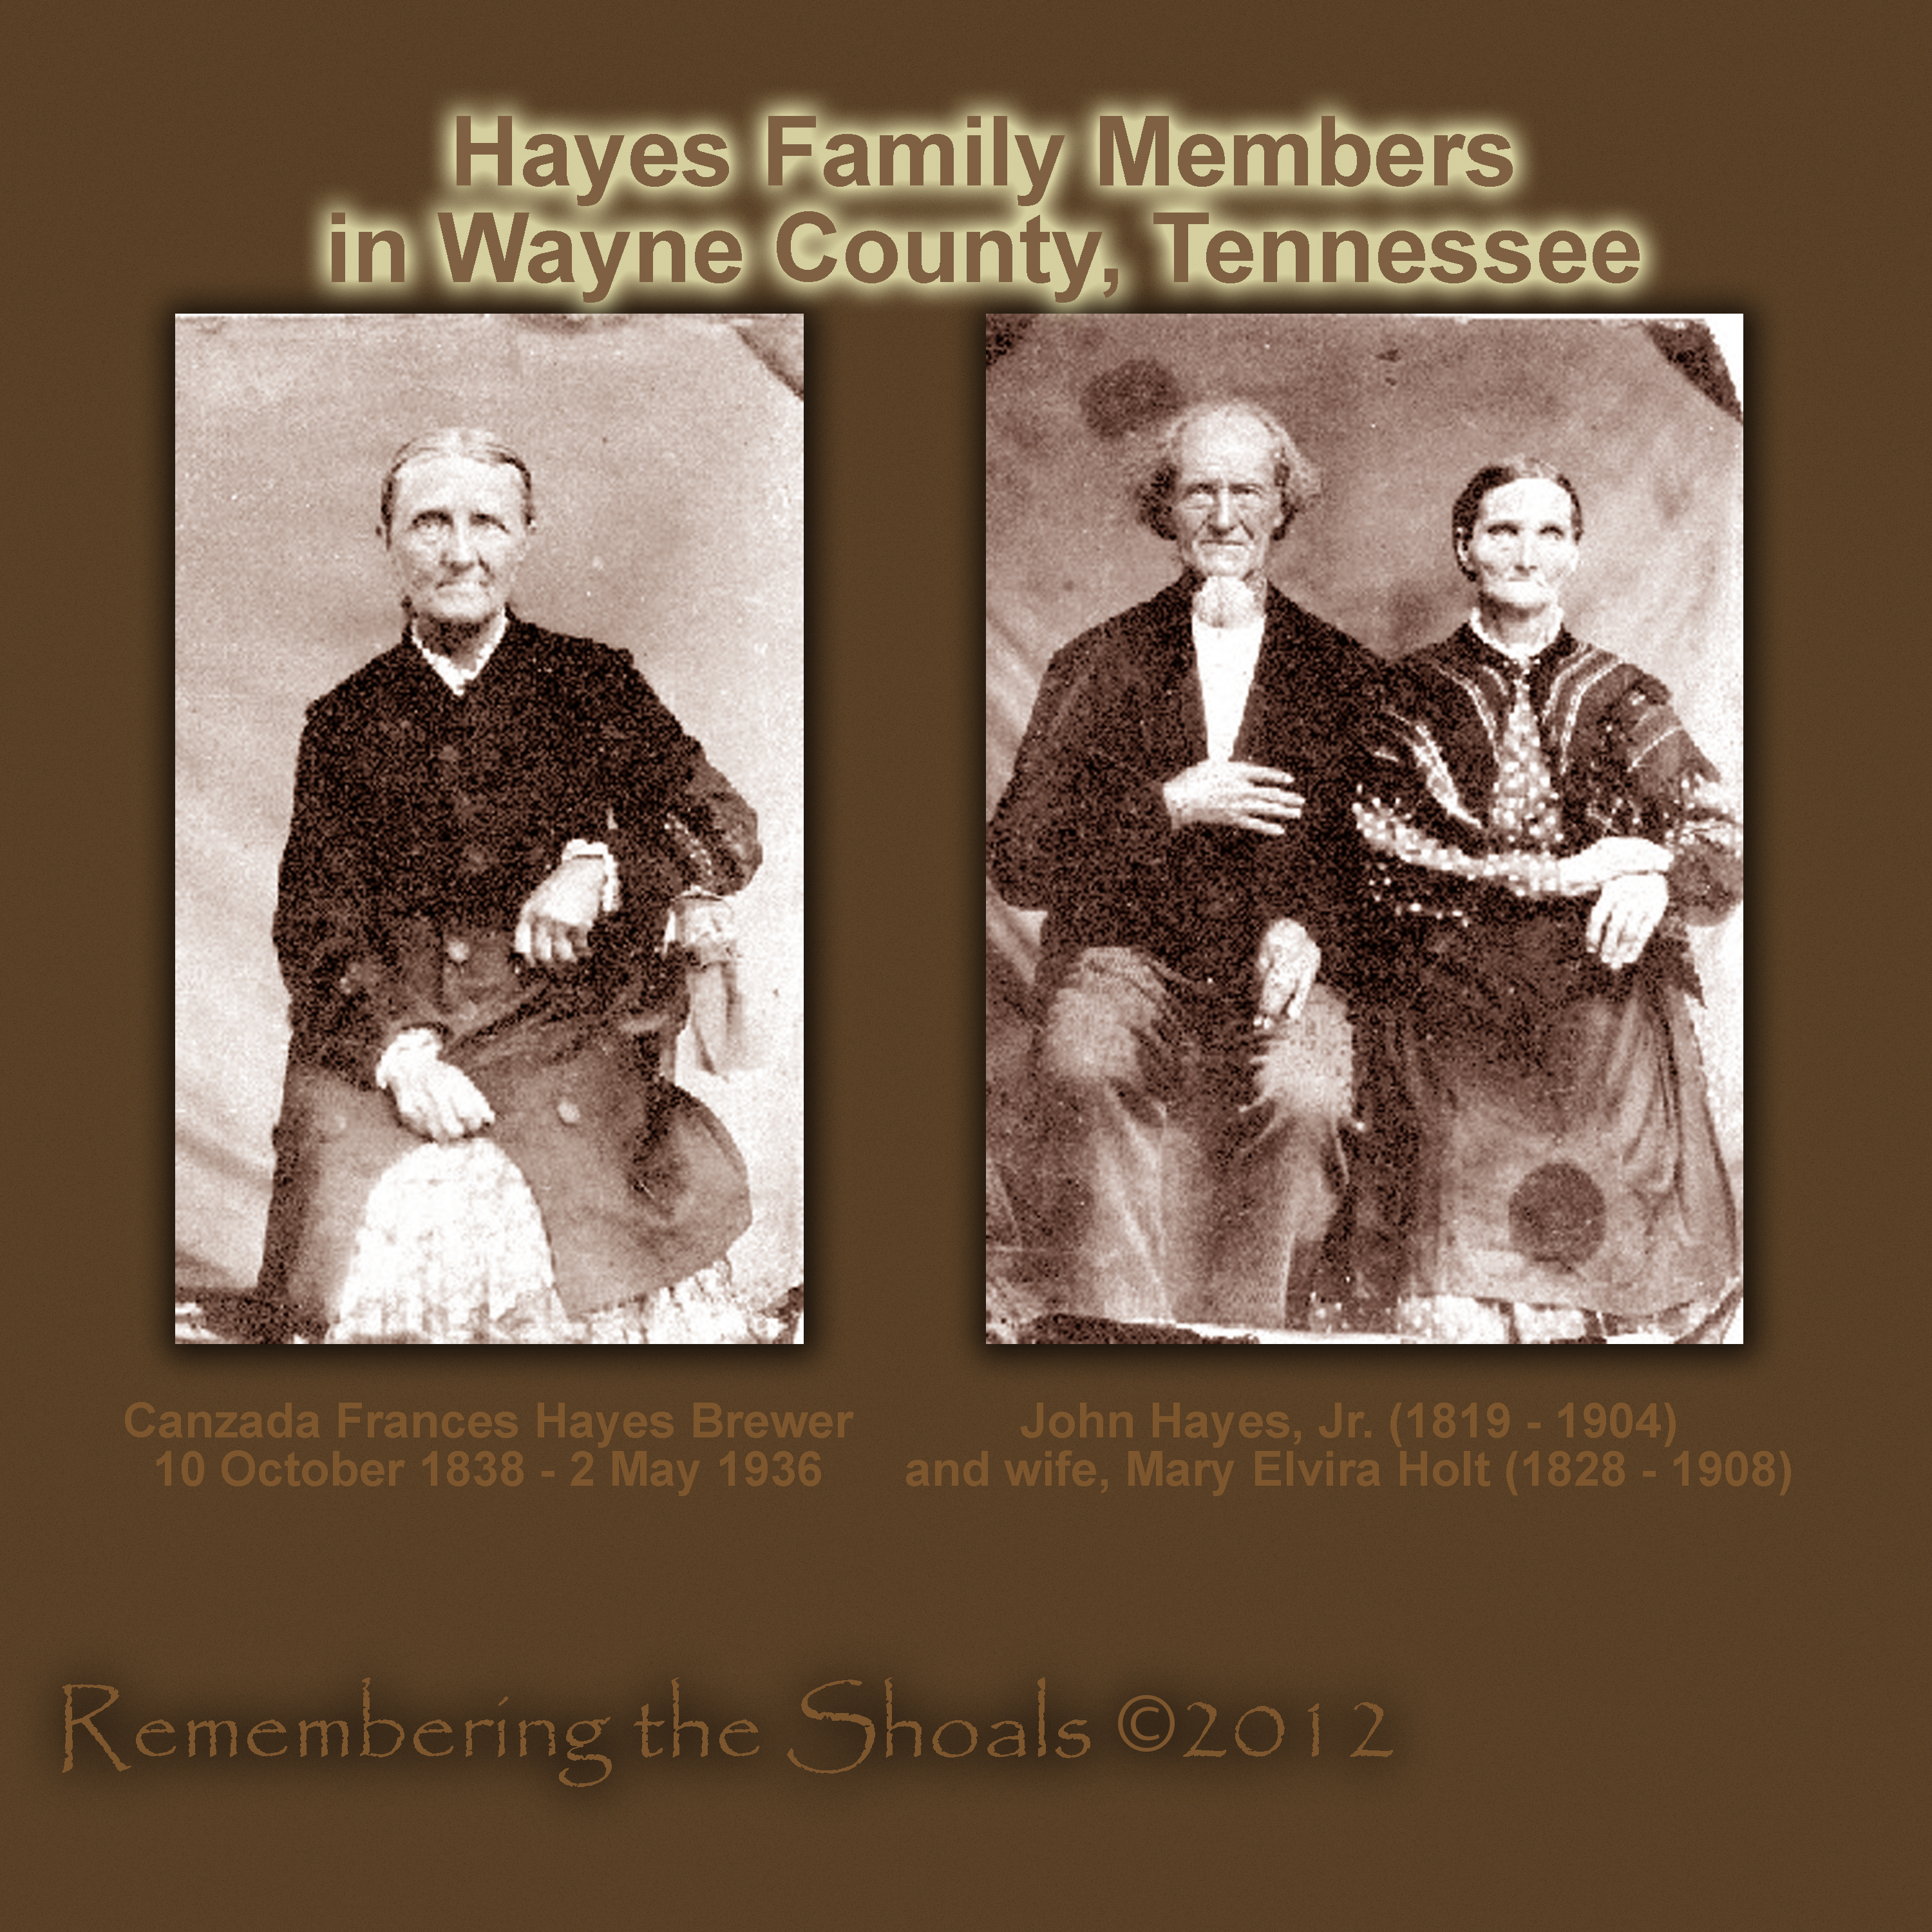 Wayne county tennessee remembering the shoals photo of hayes family in wayne county tennessee circa 1860 1betcityfo Images